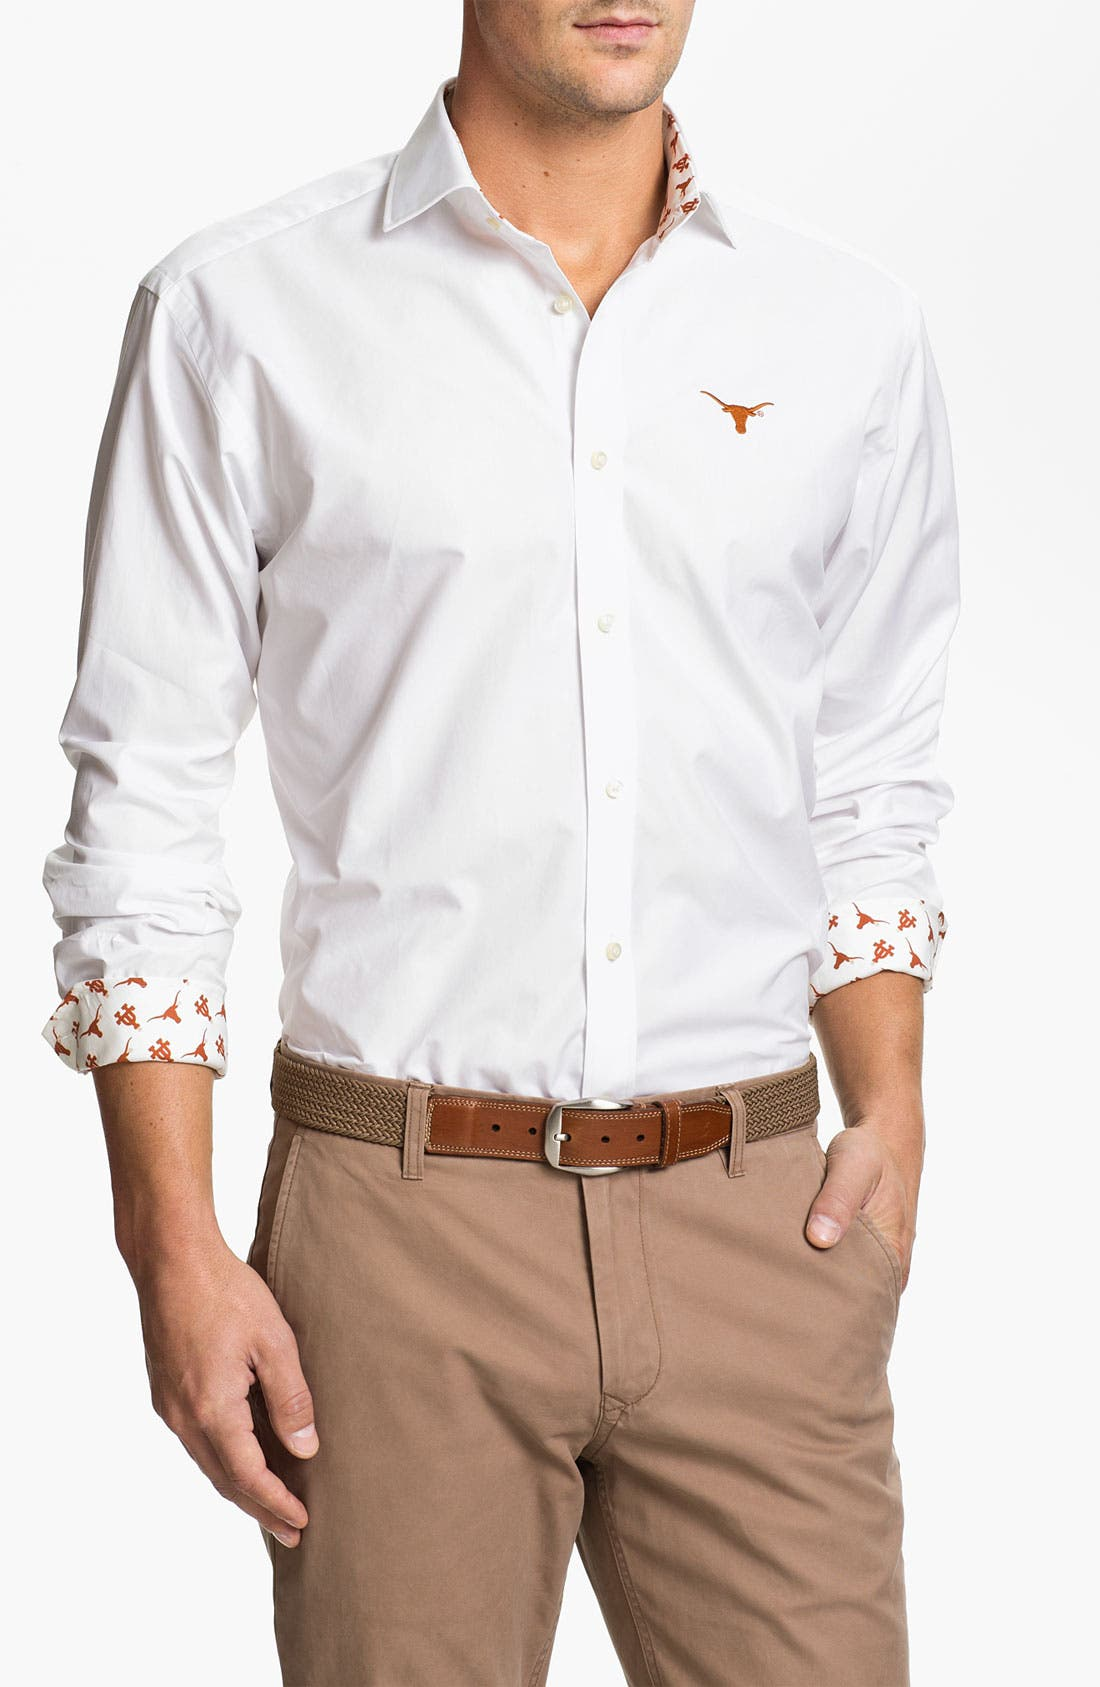 Alternate Image 1 Selected - Thomas Dean 'University of Texas' Sport Shirt